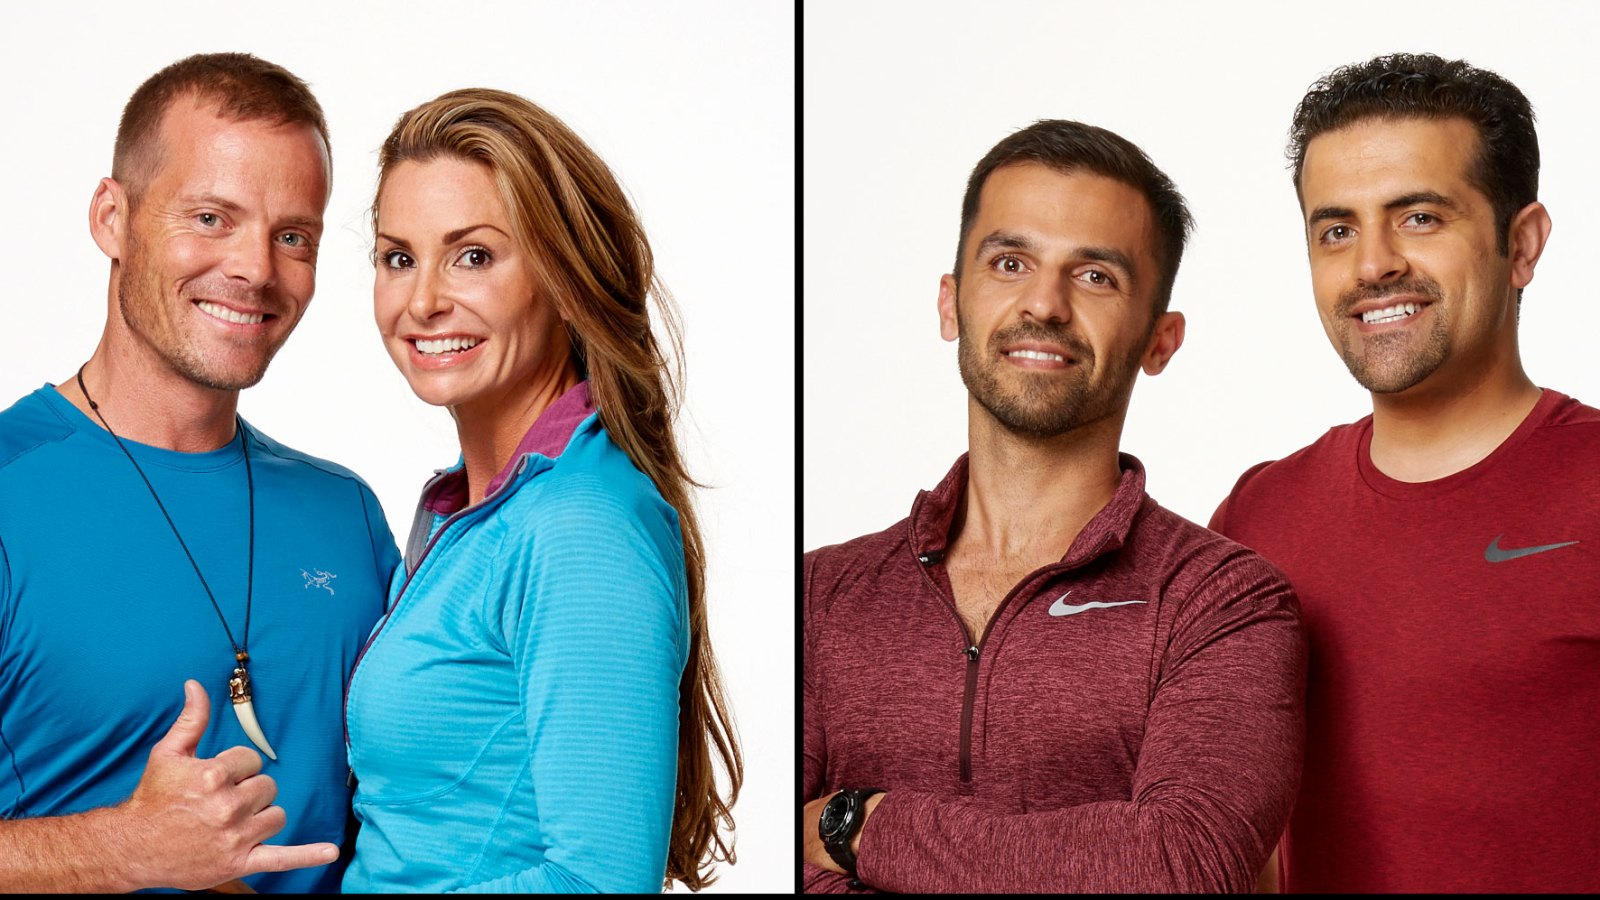 Who Won 'The Amazing Race' Season 31?